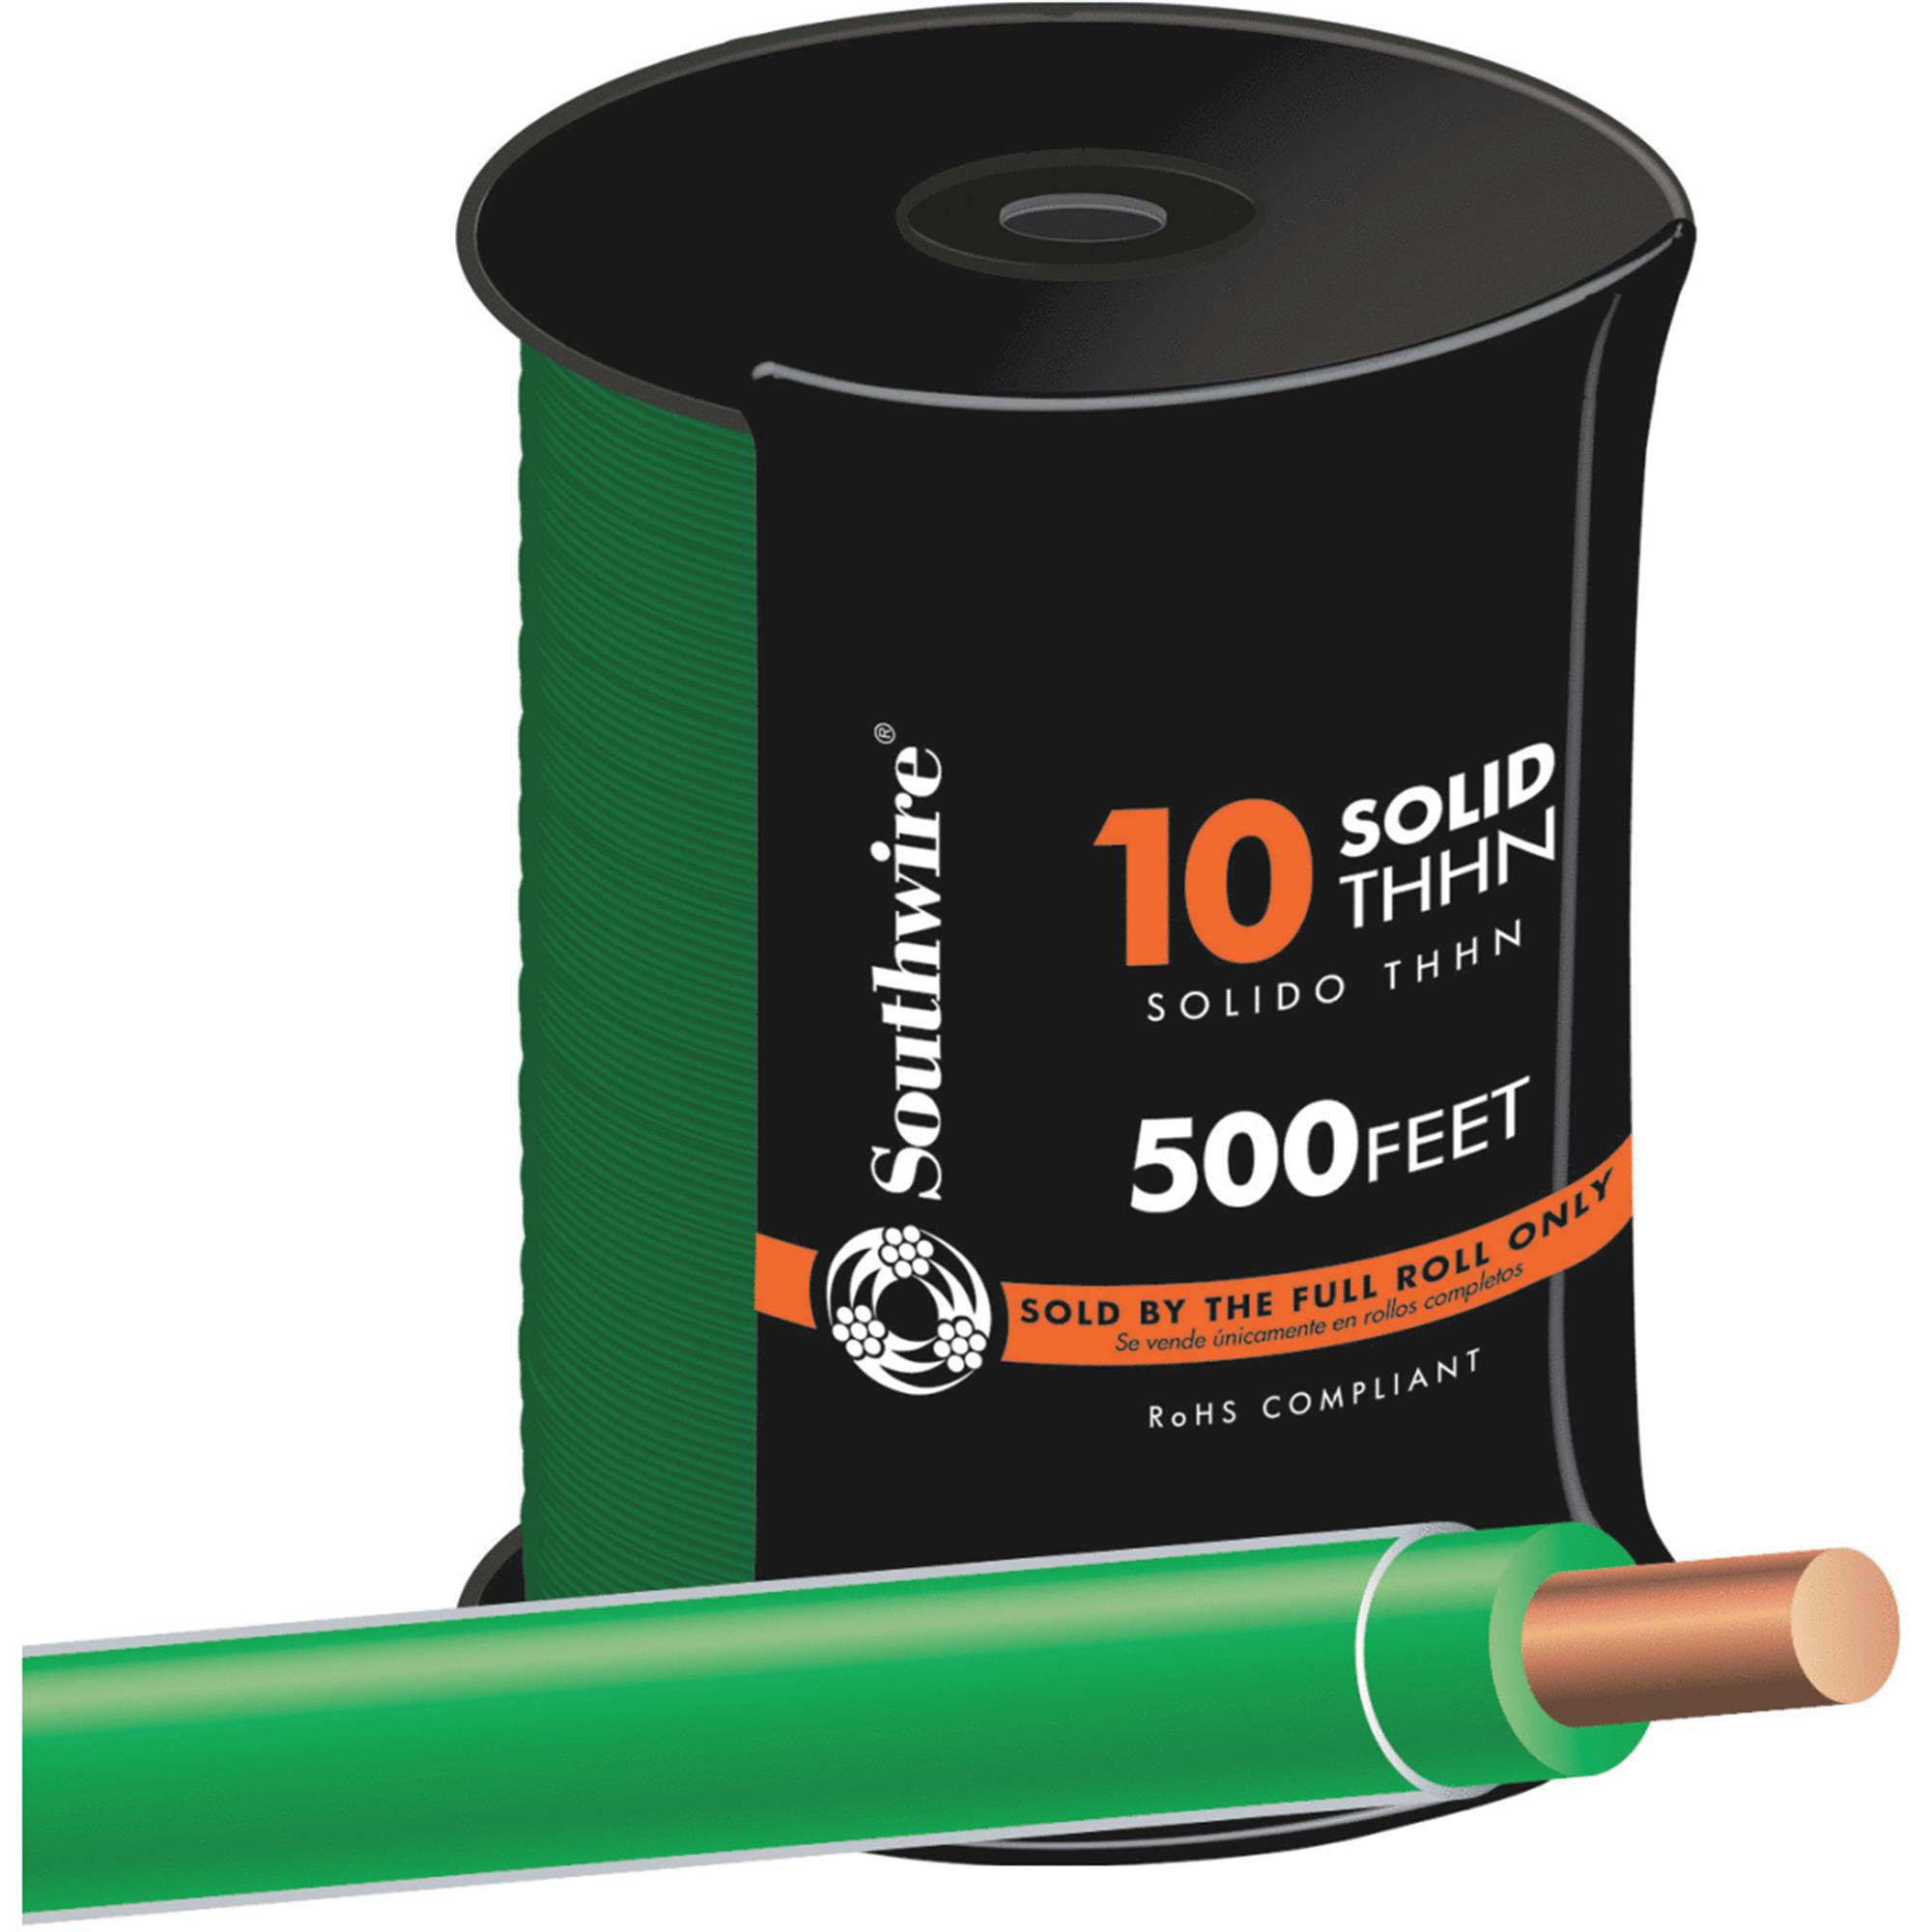 Southwire 500' 10sol Green Thhn Wire 11599857